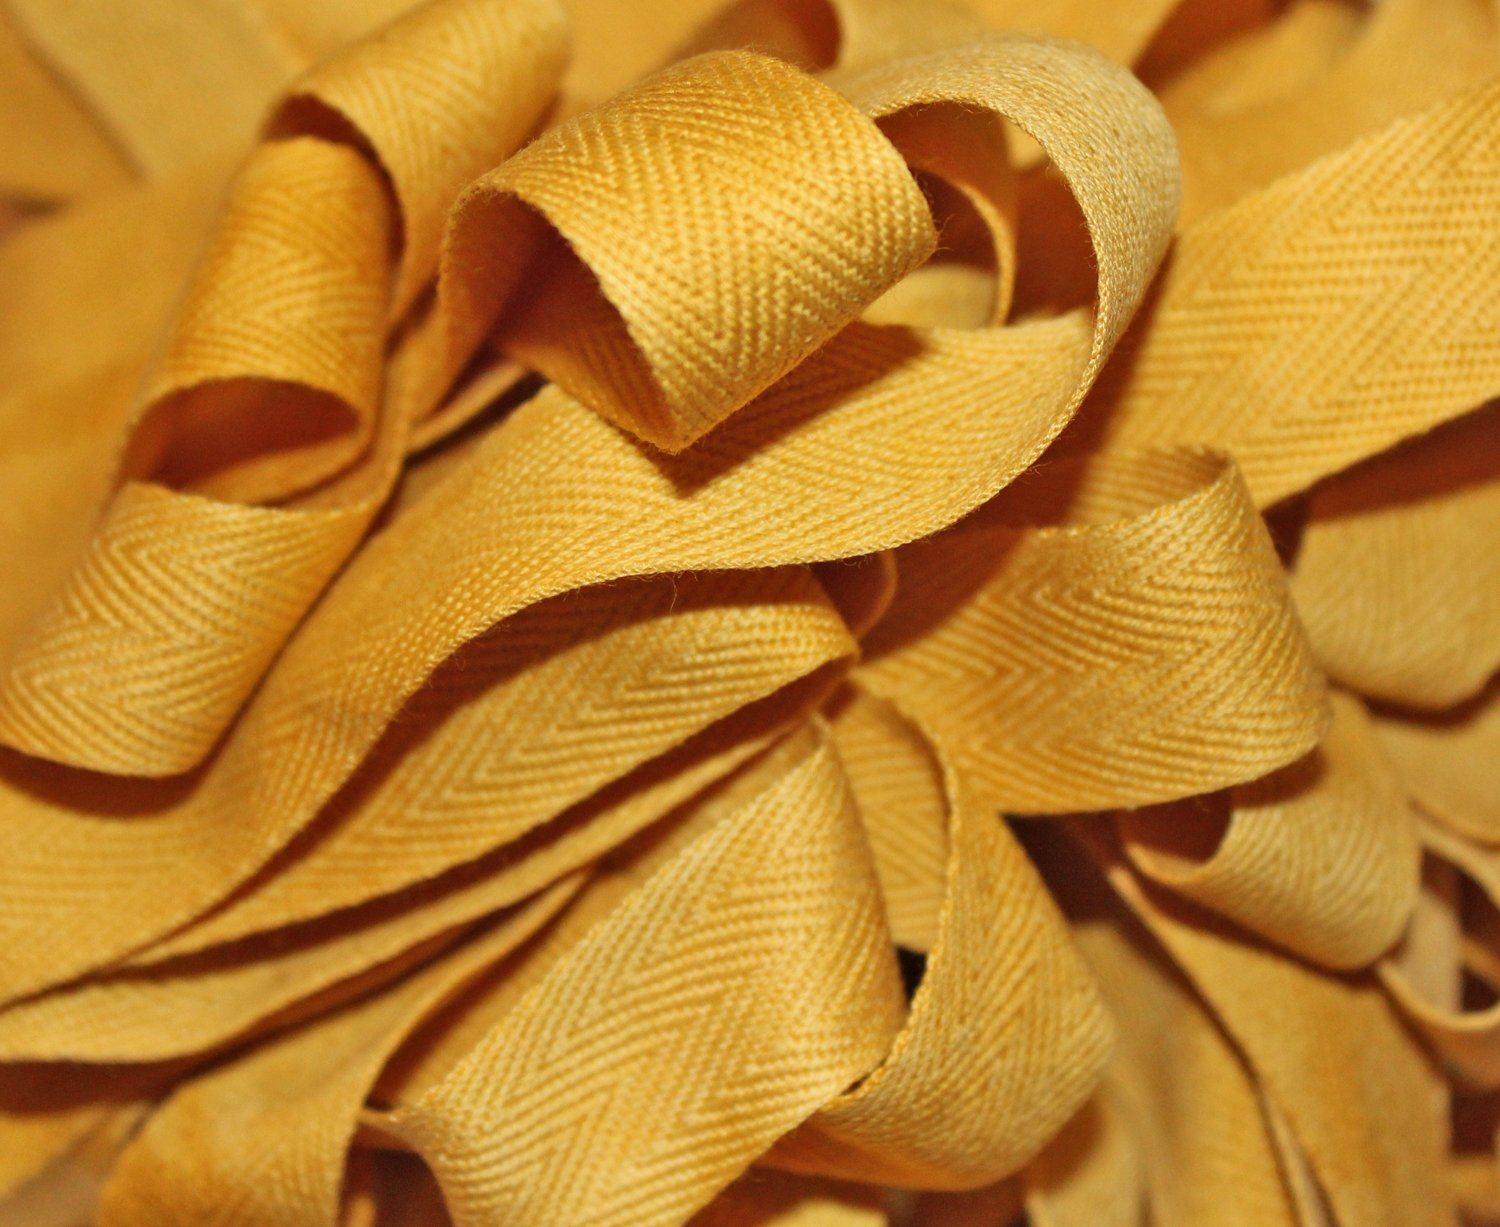 Butternut Squash - Hand-dyed Cotton Twill Tape